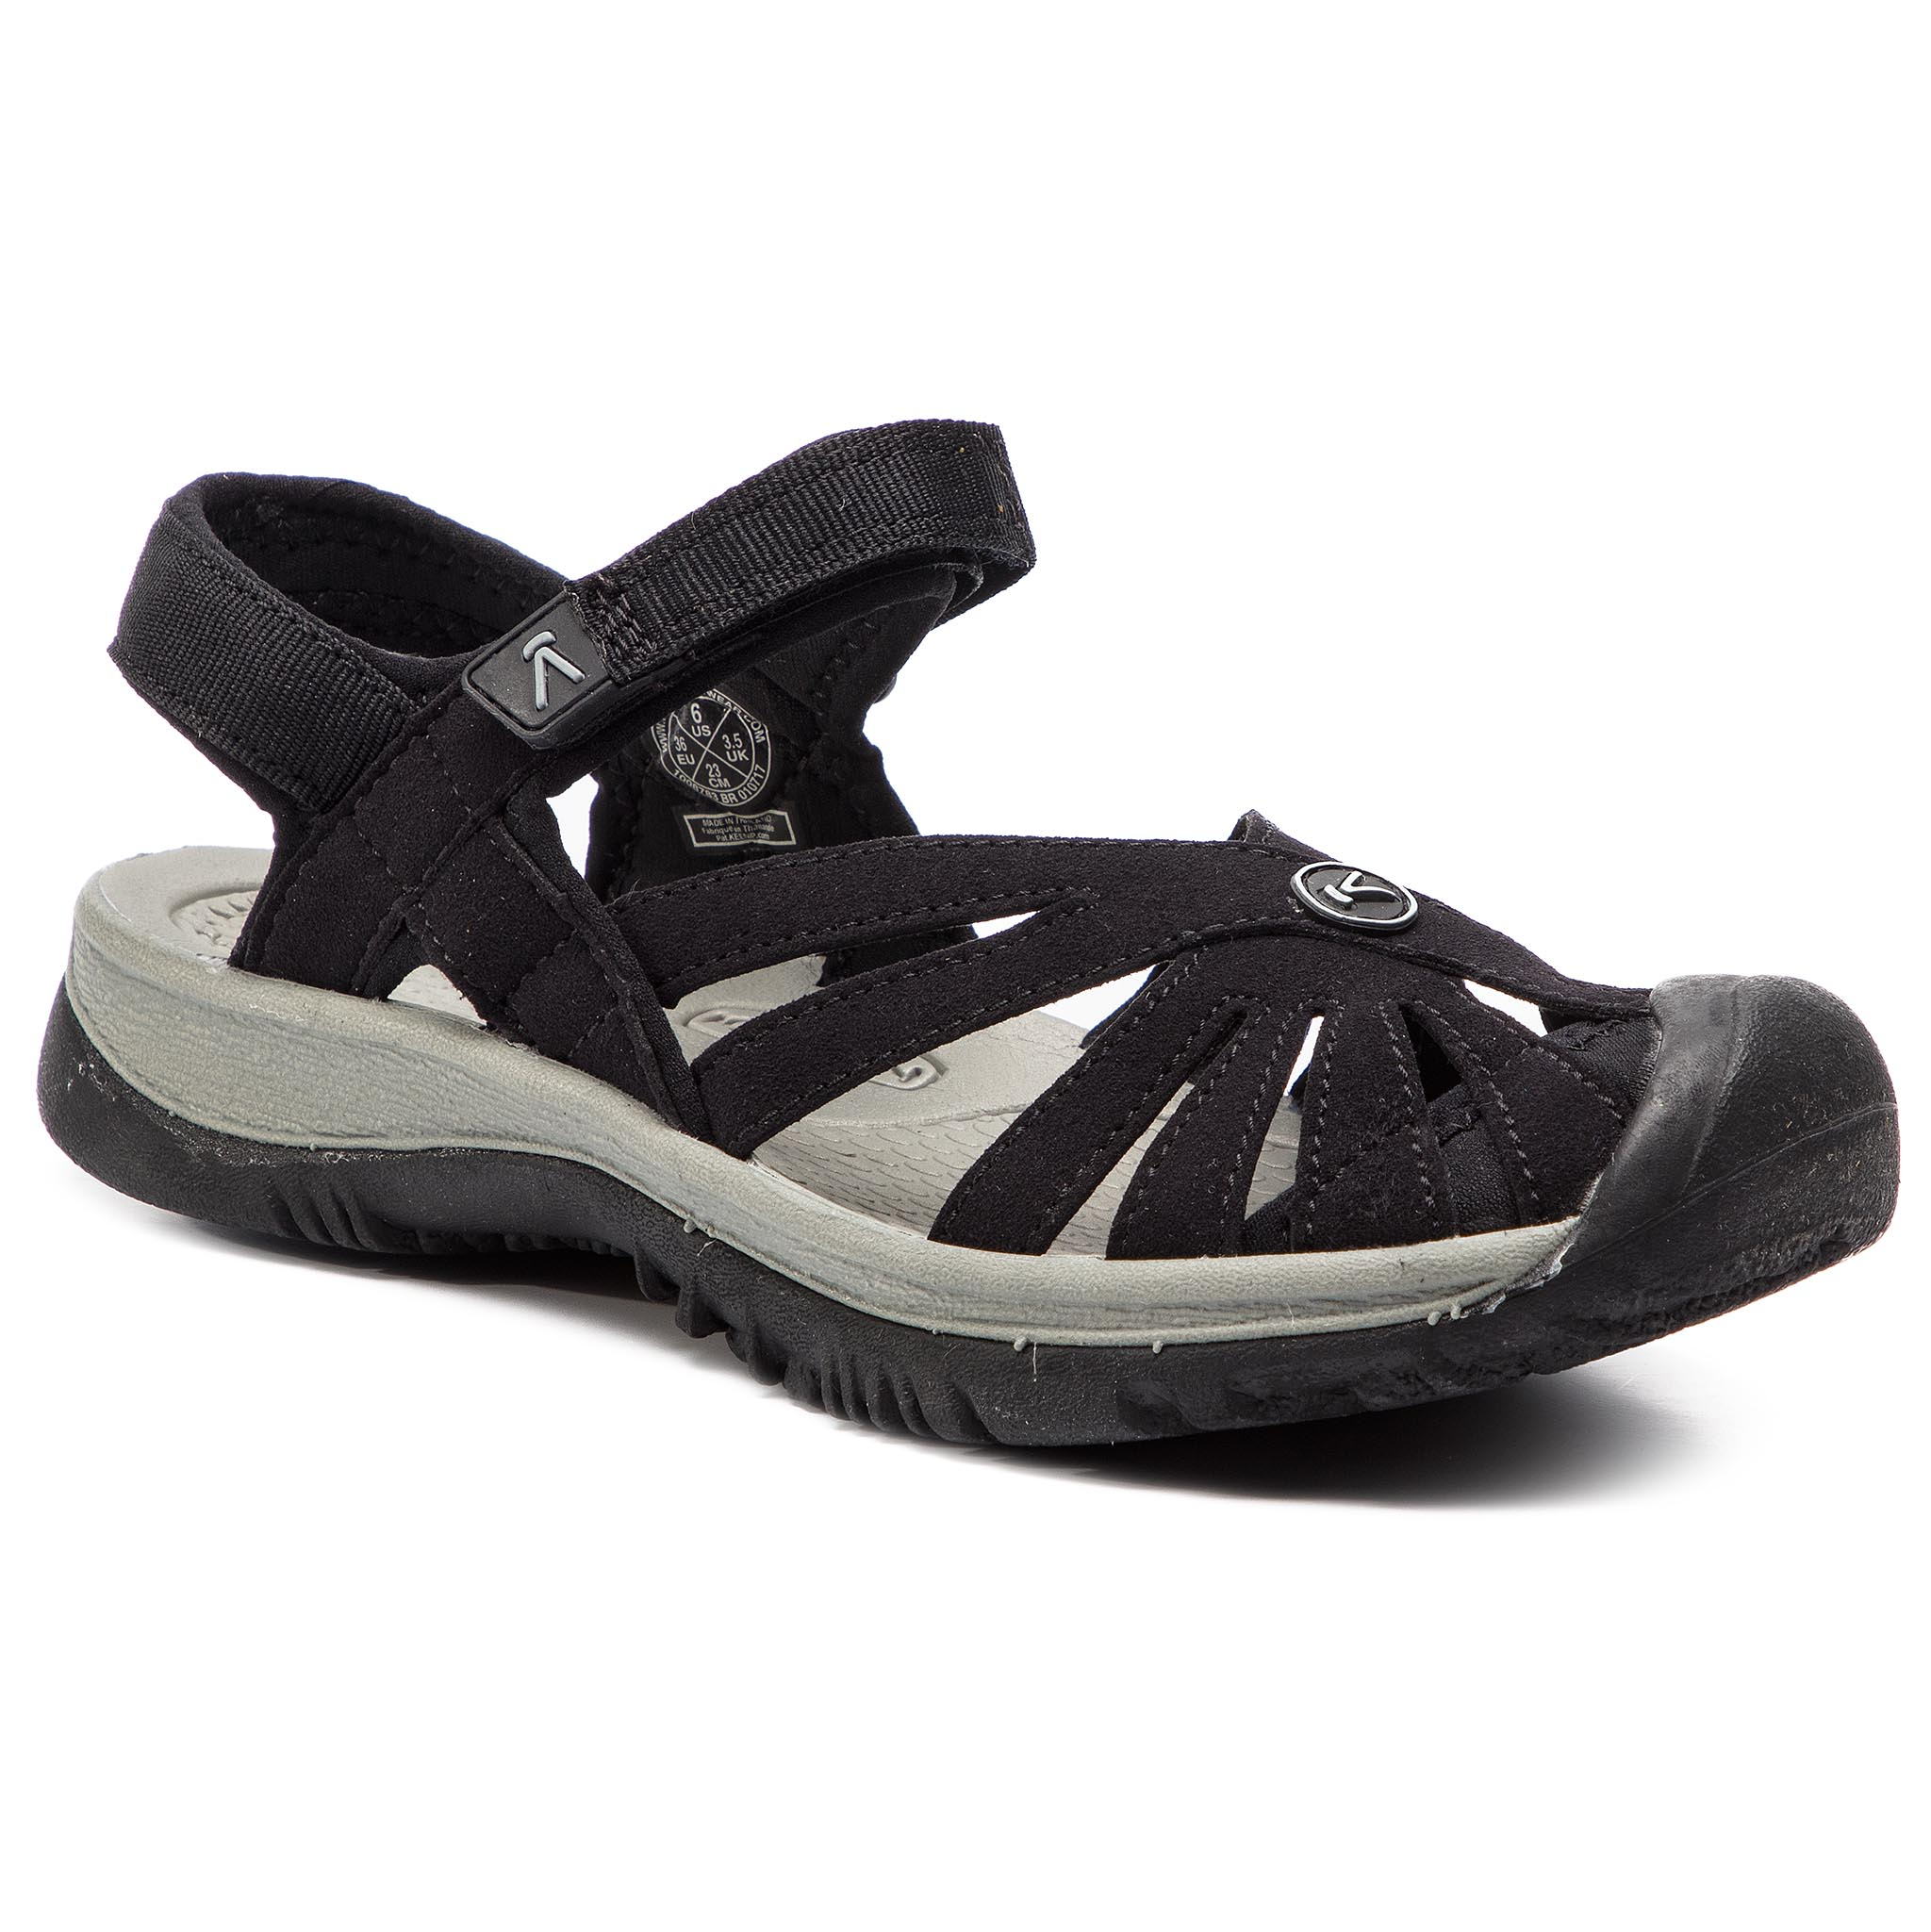 Sandale KEEN - Rose Sandal 1008783 Black/Neutral Grey